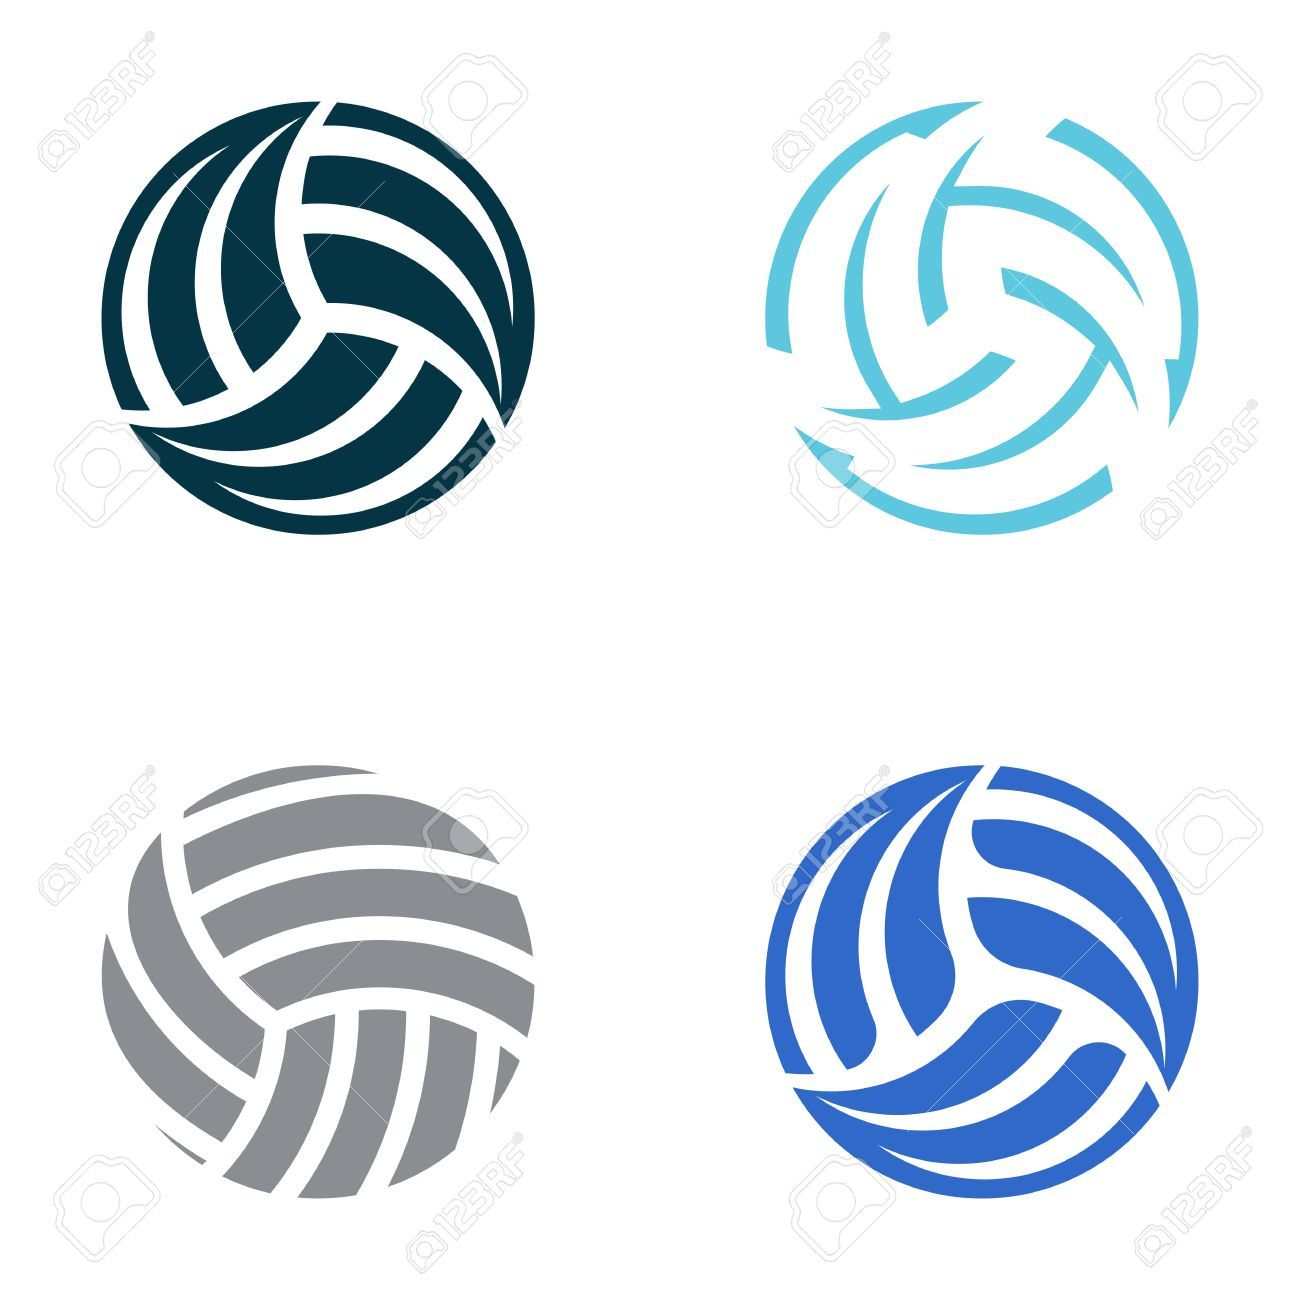 Set Of Four Volleyball Ball Abstract Icons Volleyball Clipart Volleyball Drawing Volleyball Tattoos